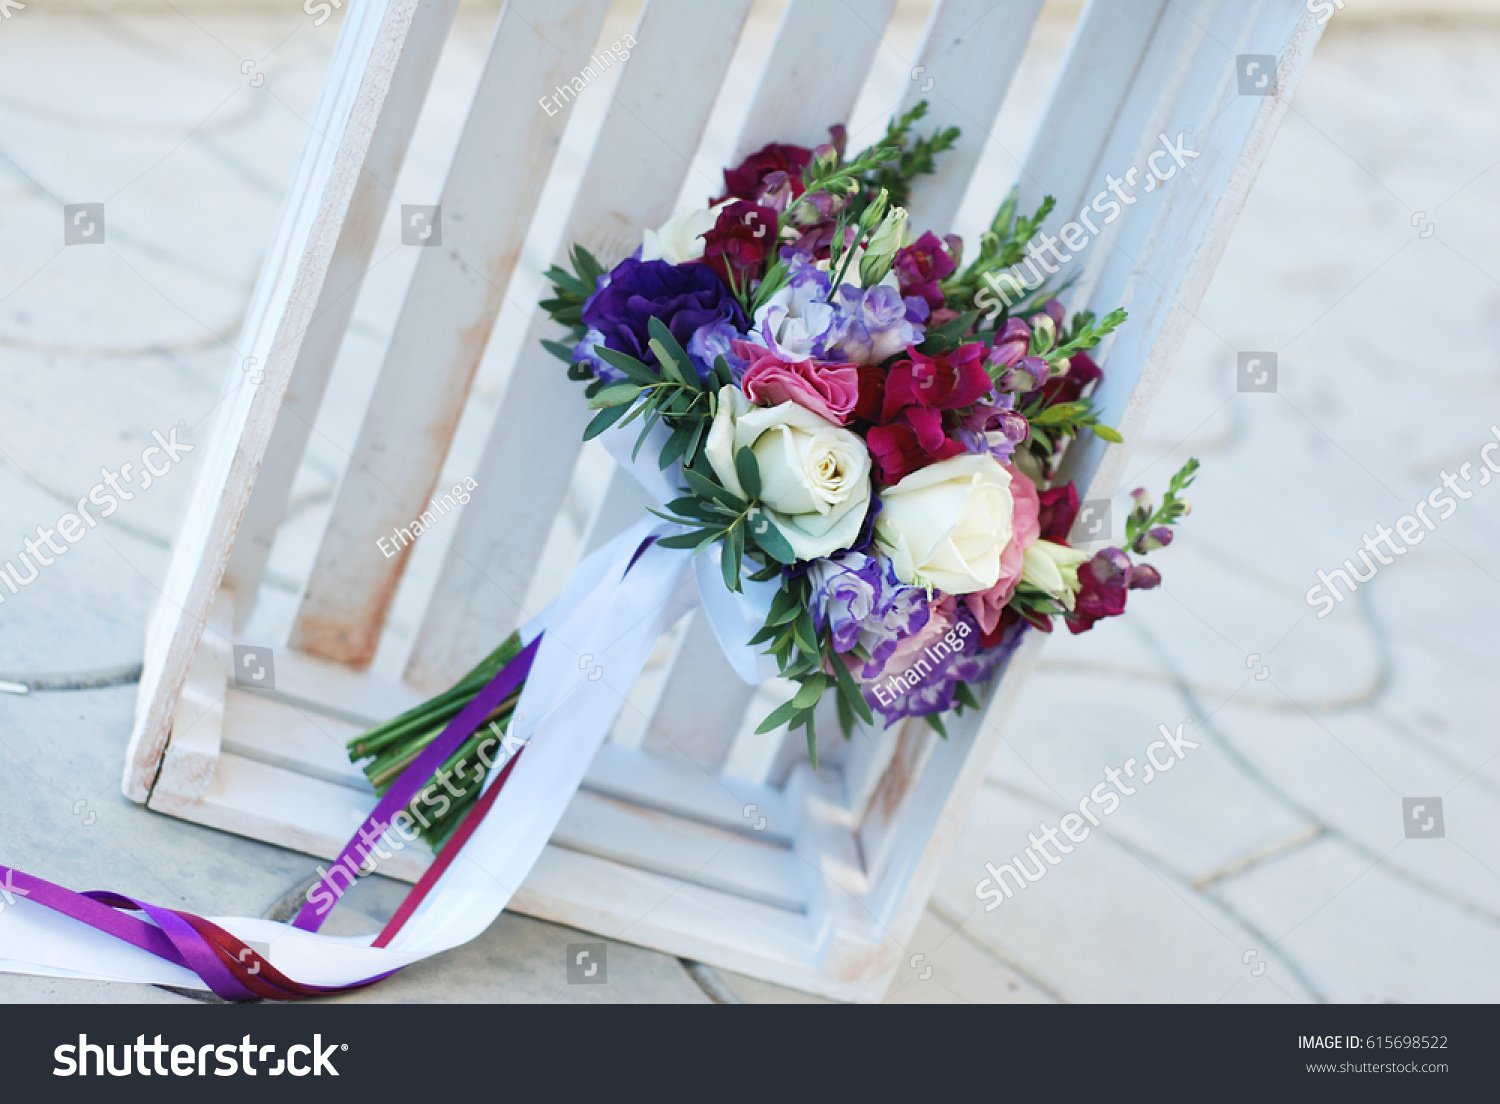 Bridal Wedding Bouquet Flowers White And Violet Ez Canvas